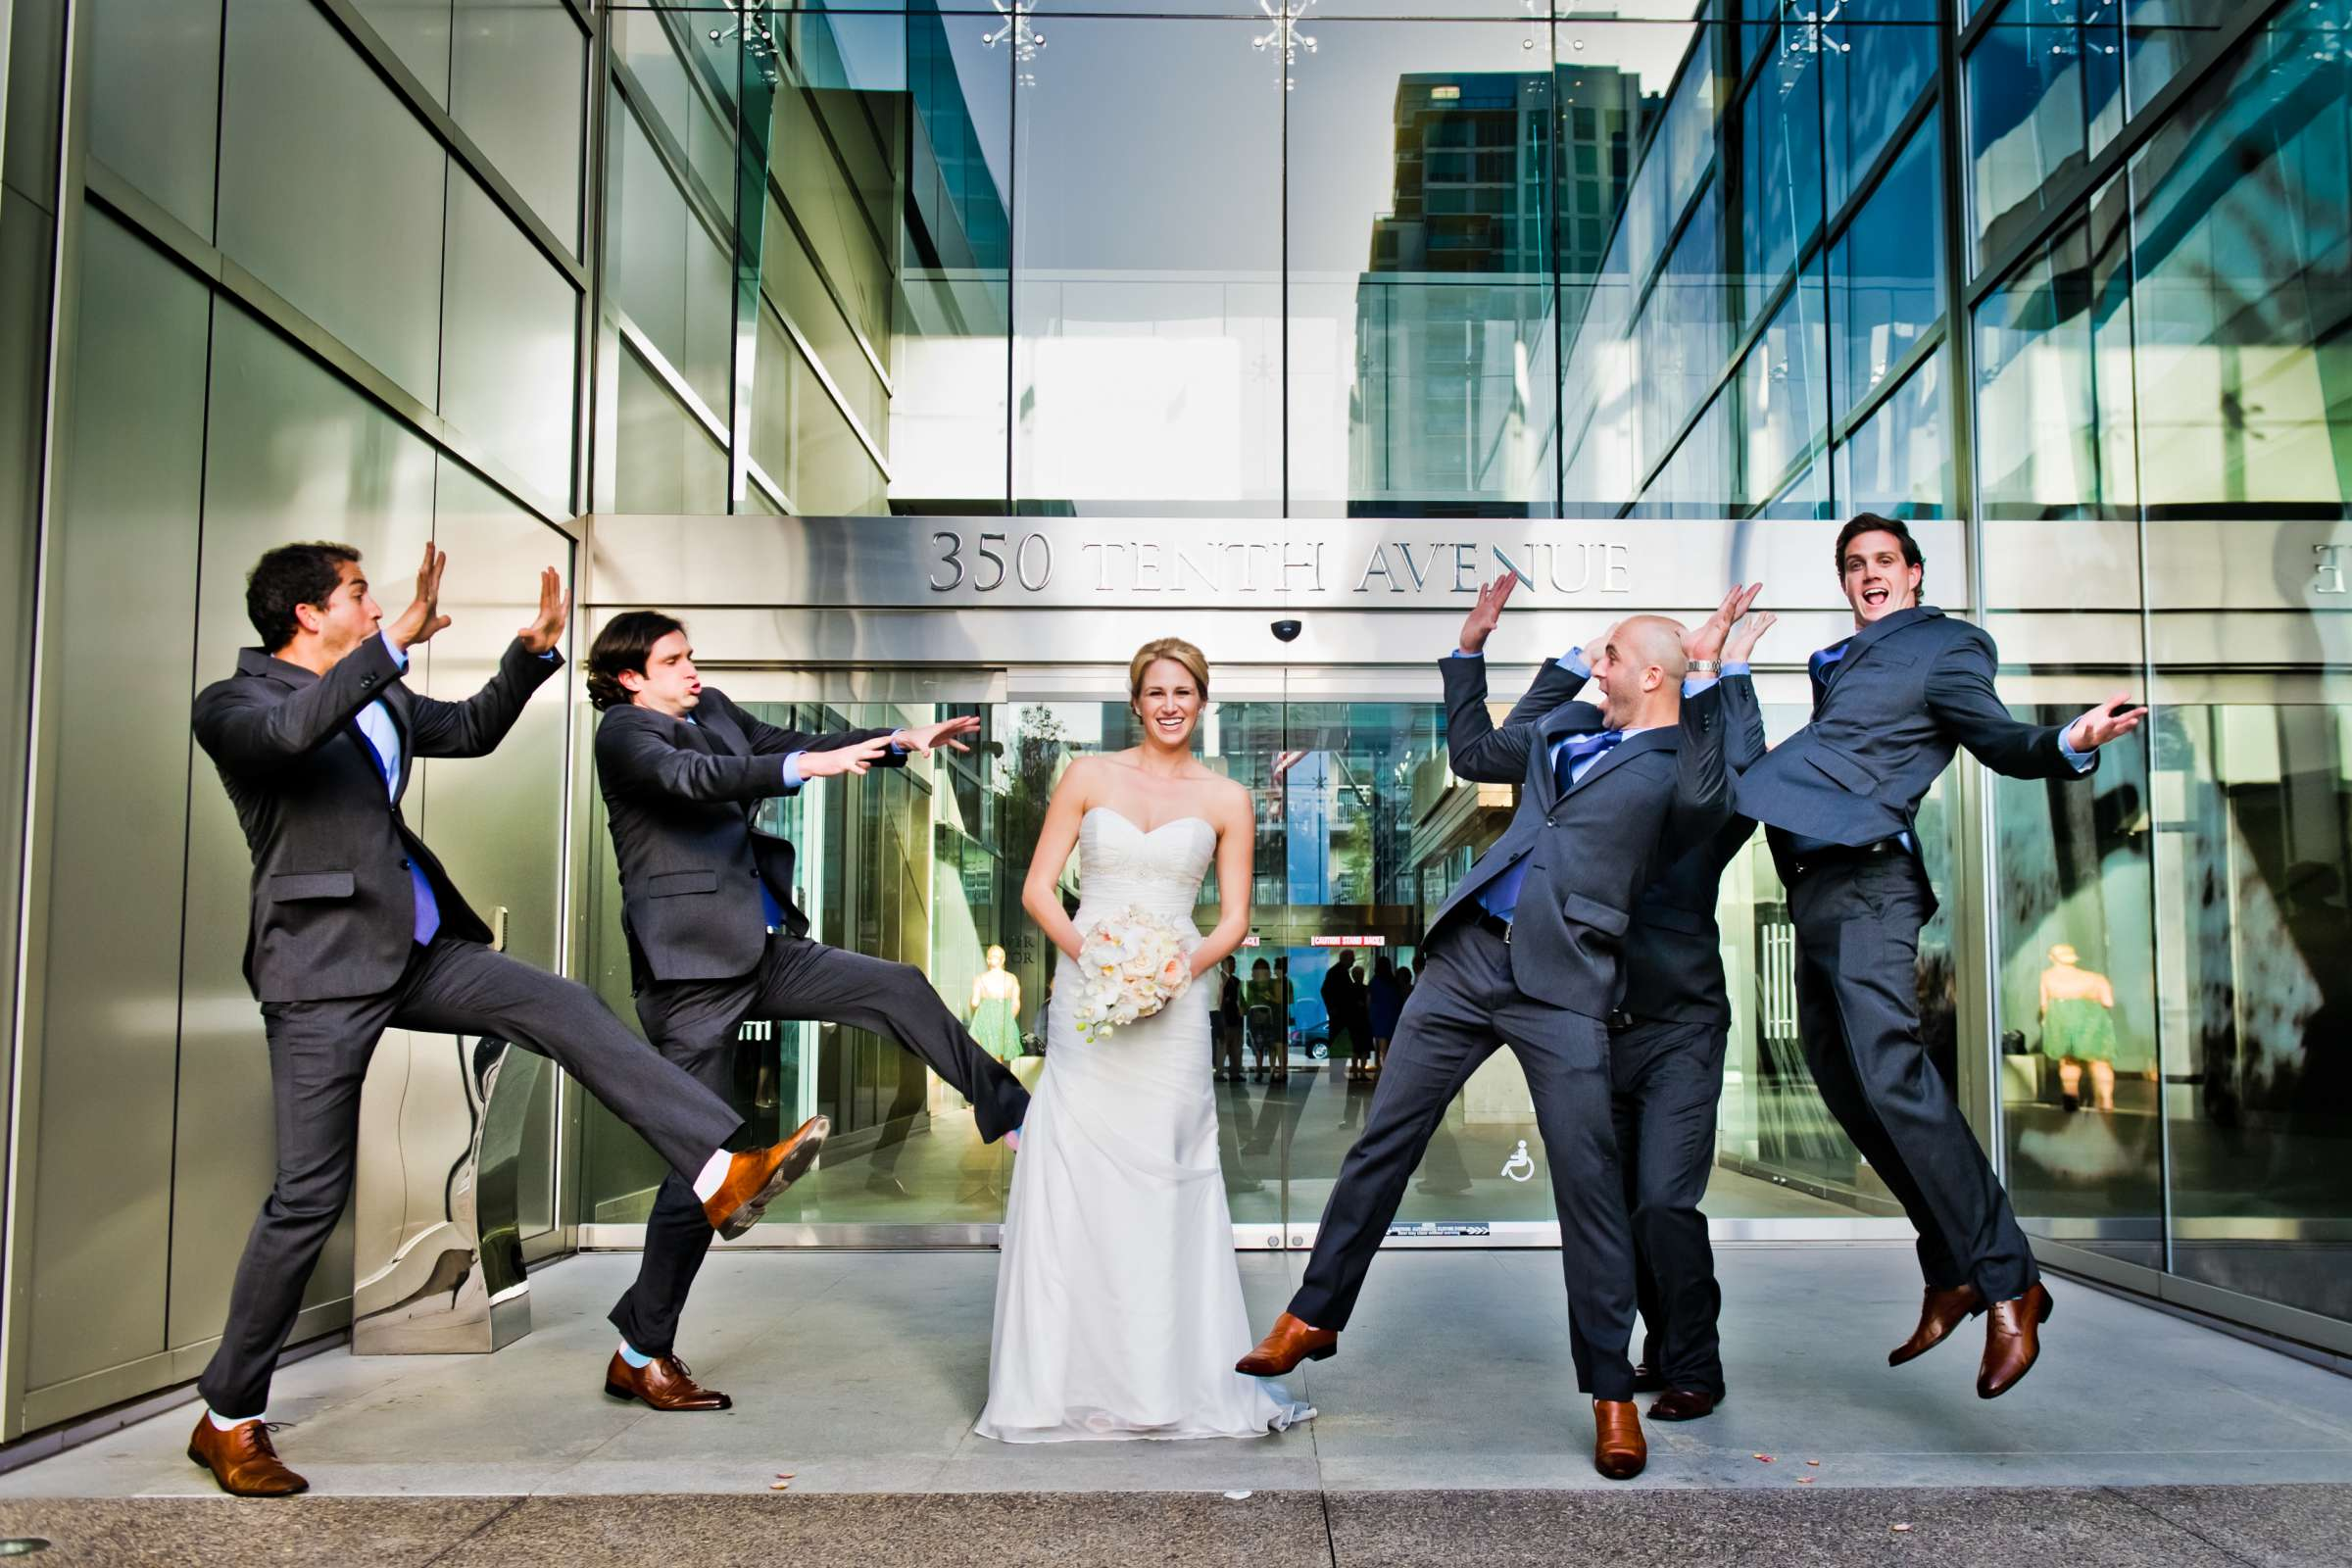 Funny moment, Urban Downtown at Ultimate Skybox Wedding, Chelsea and Frank Wedding Photo #49 by True Photography